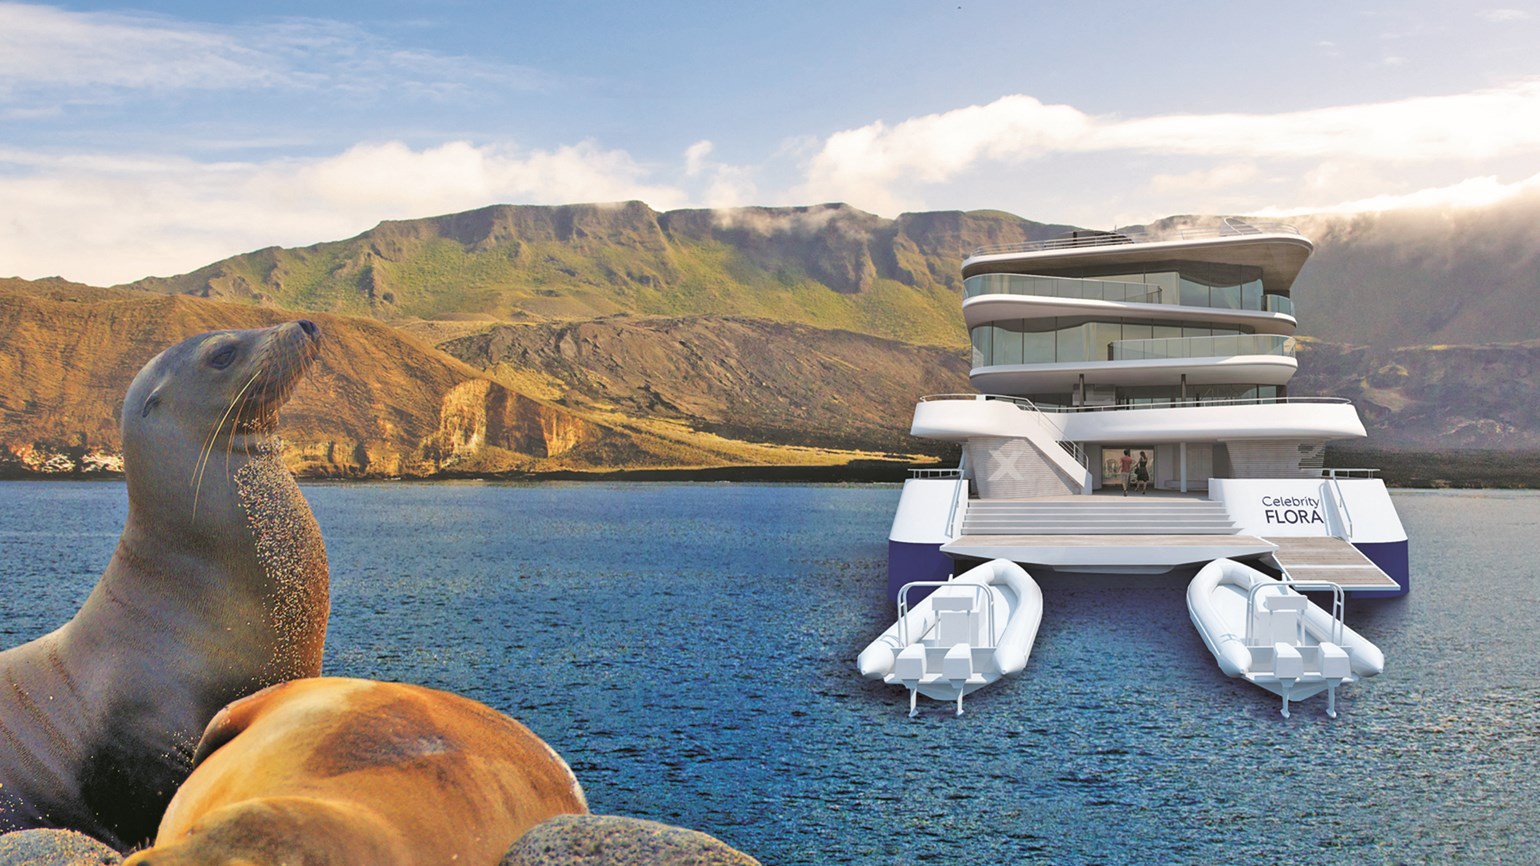 Celebrity building the Flora, a small ship for Galapagos cruises